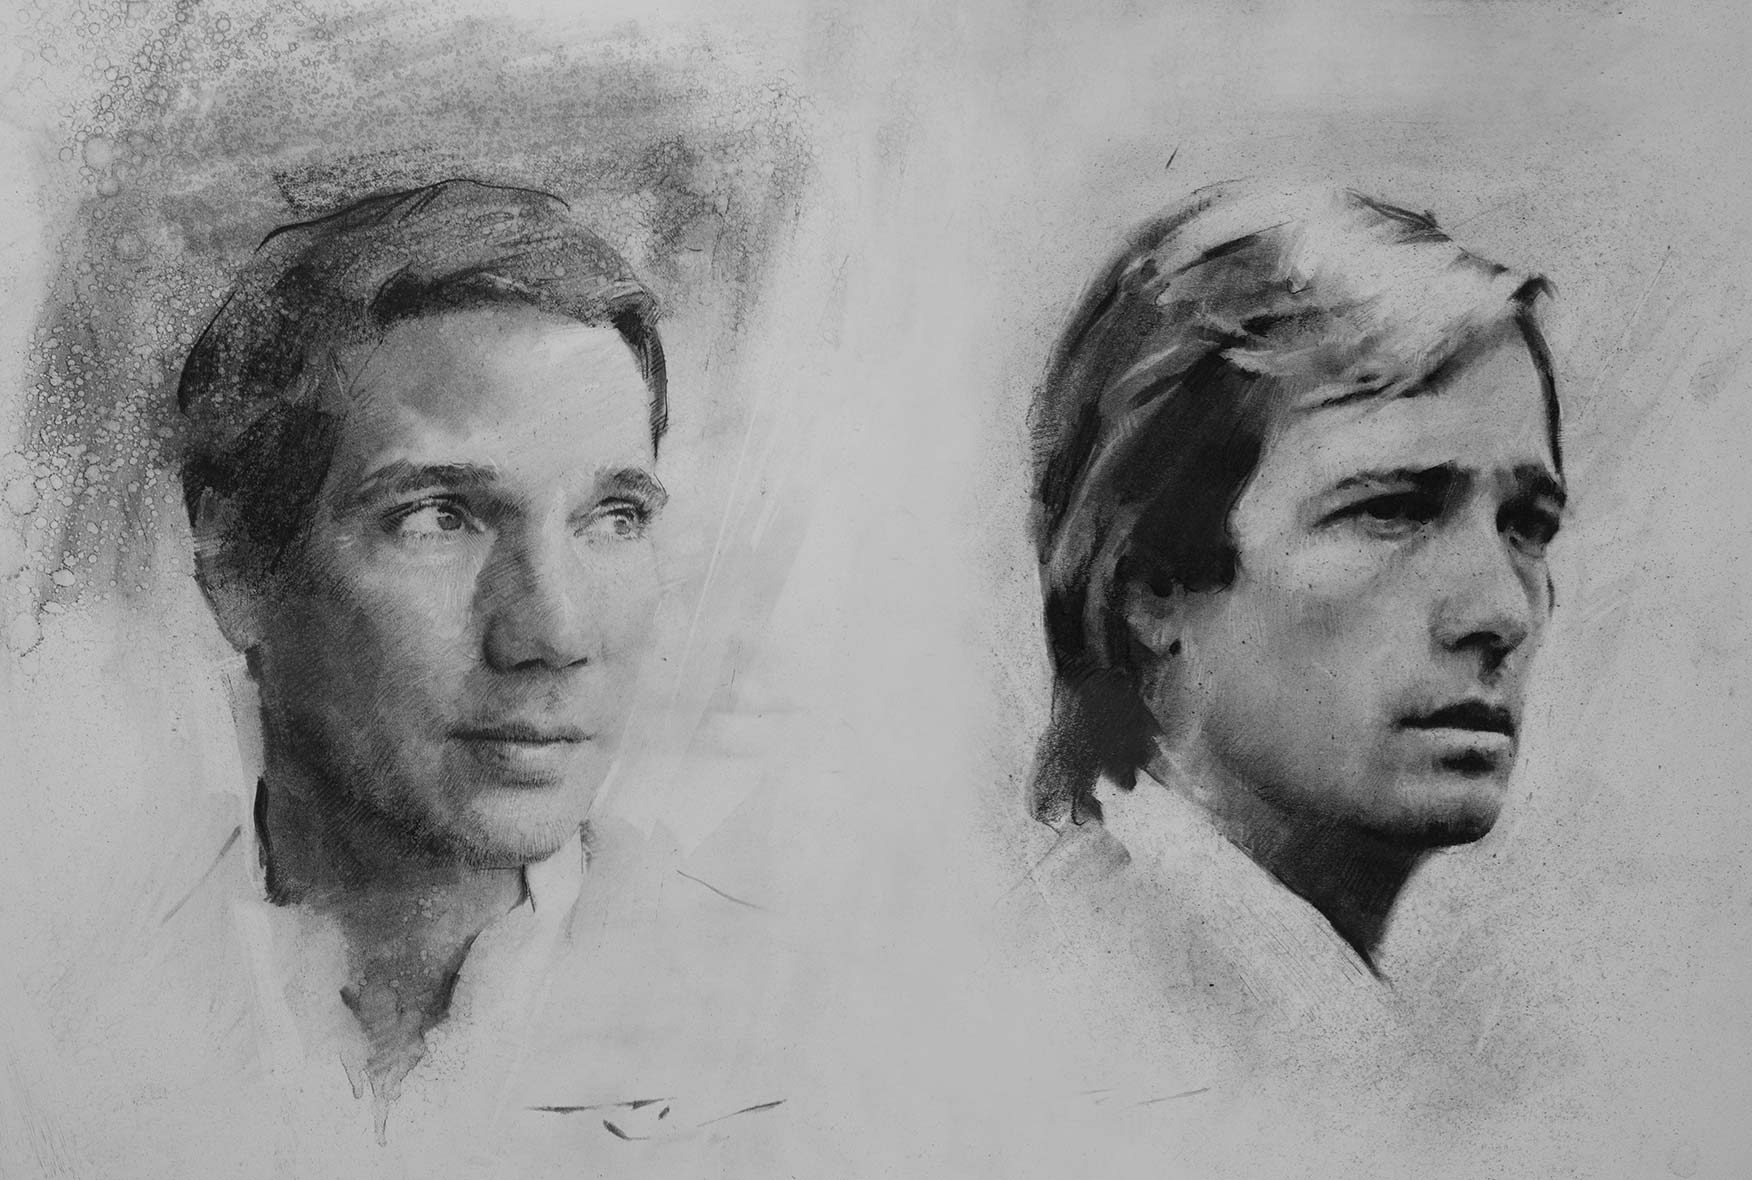 Sketches of Erwin and Olivier Creed